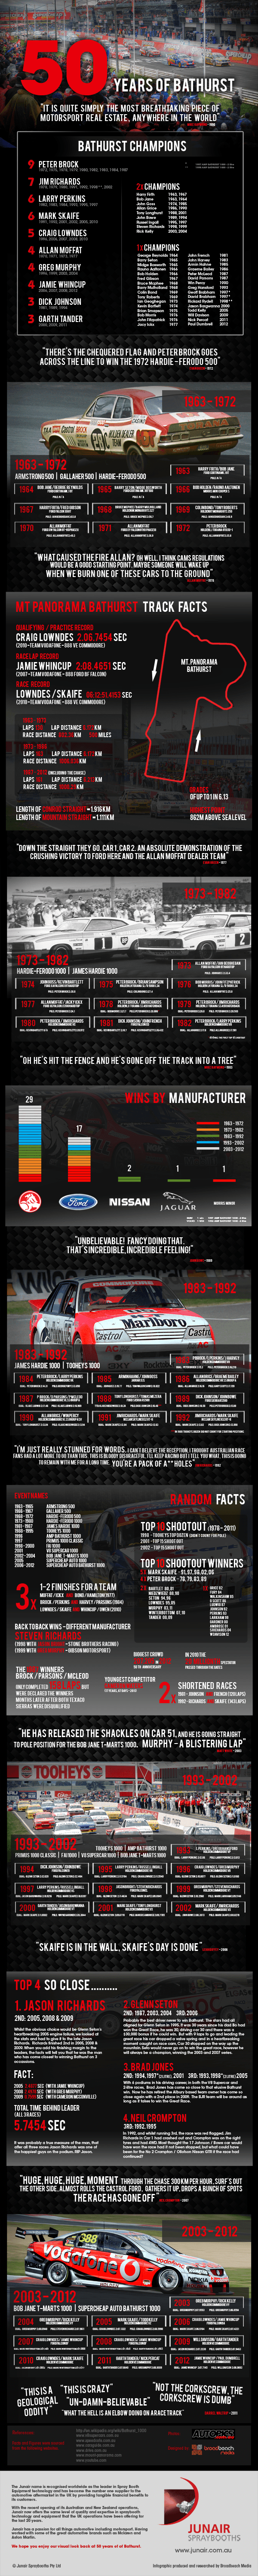 50 Years of Bathurst - Infographic